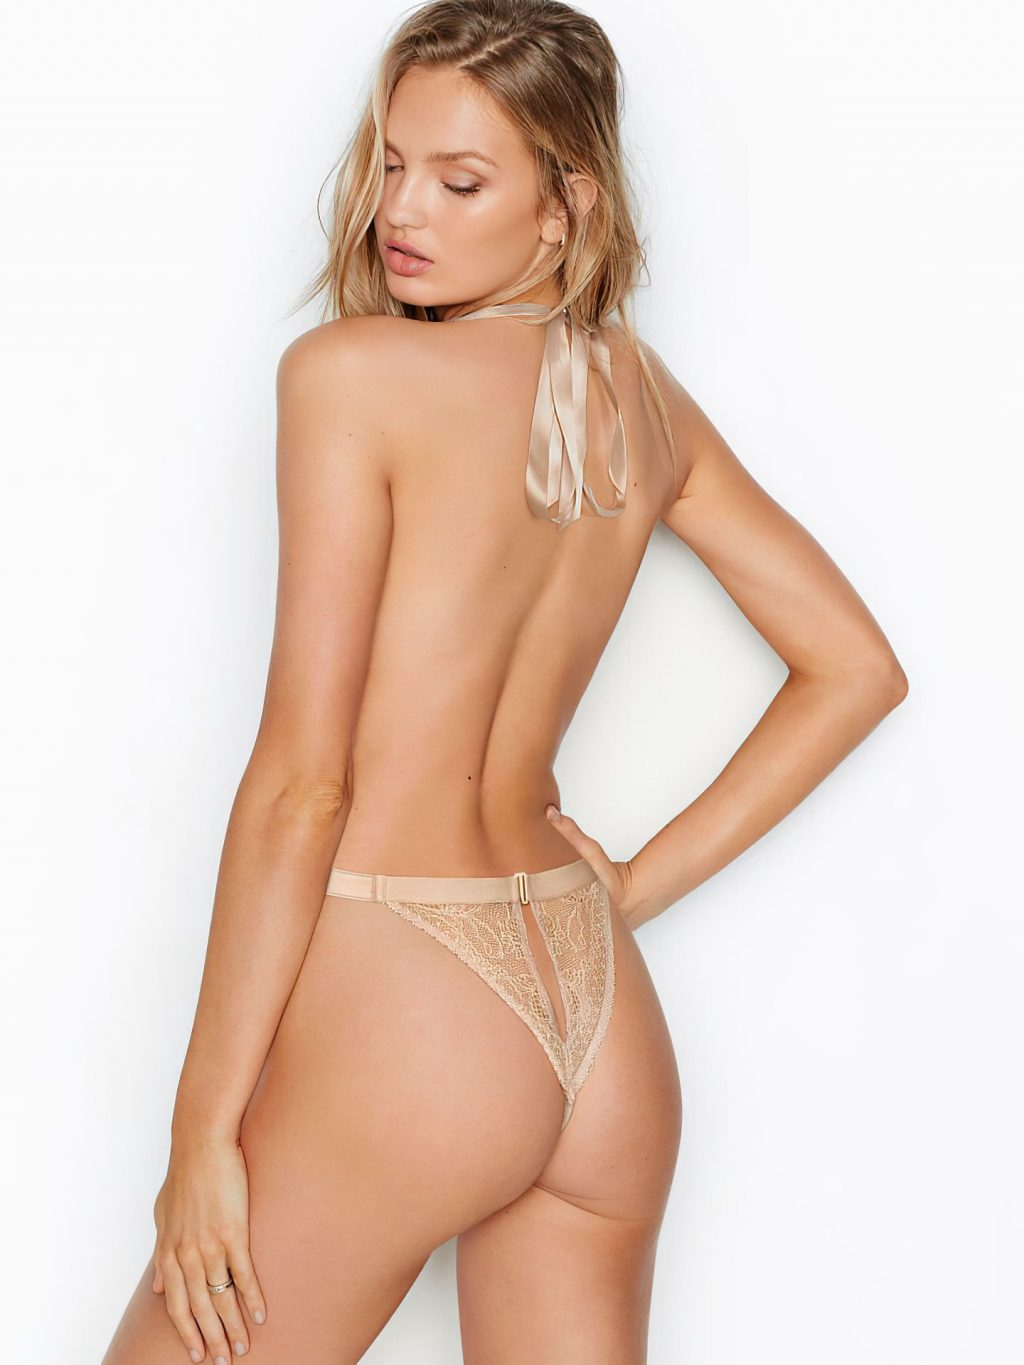 Sexy Romee Strijd Poses For a New Advertising Campaign (12 Photos)